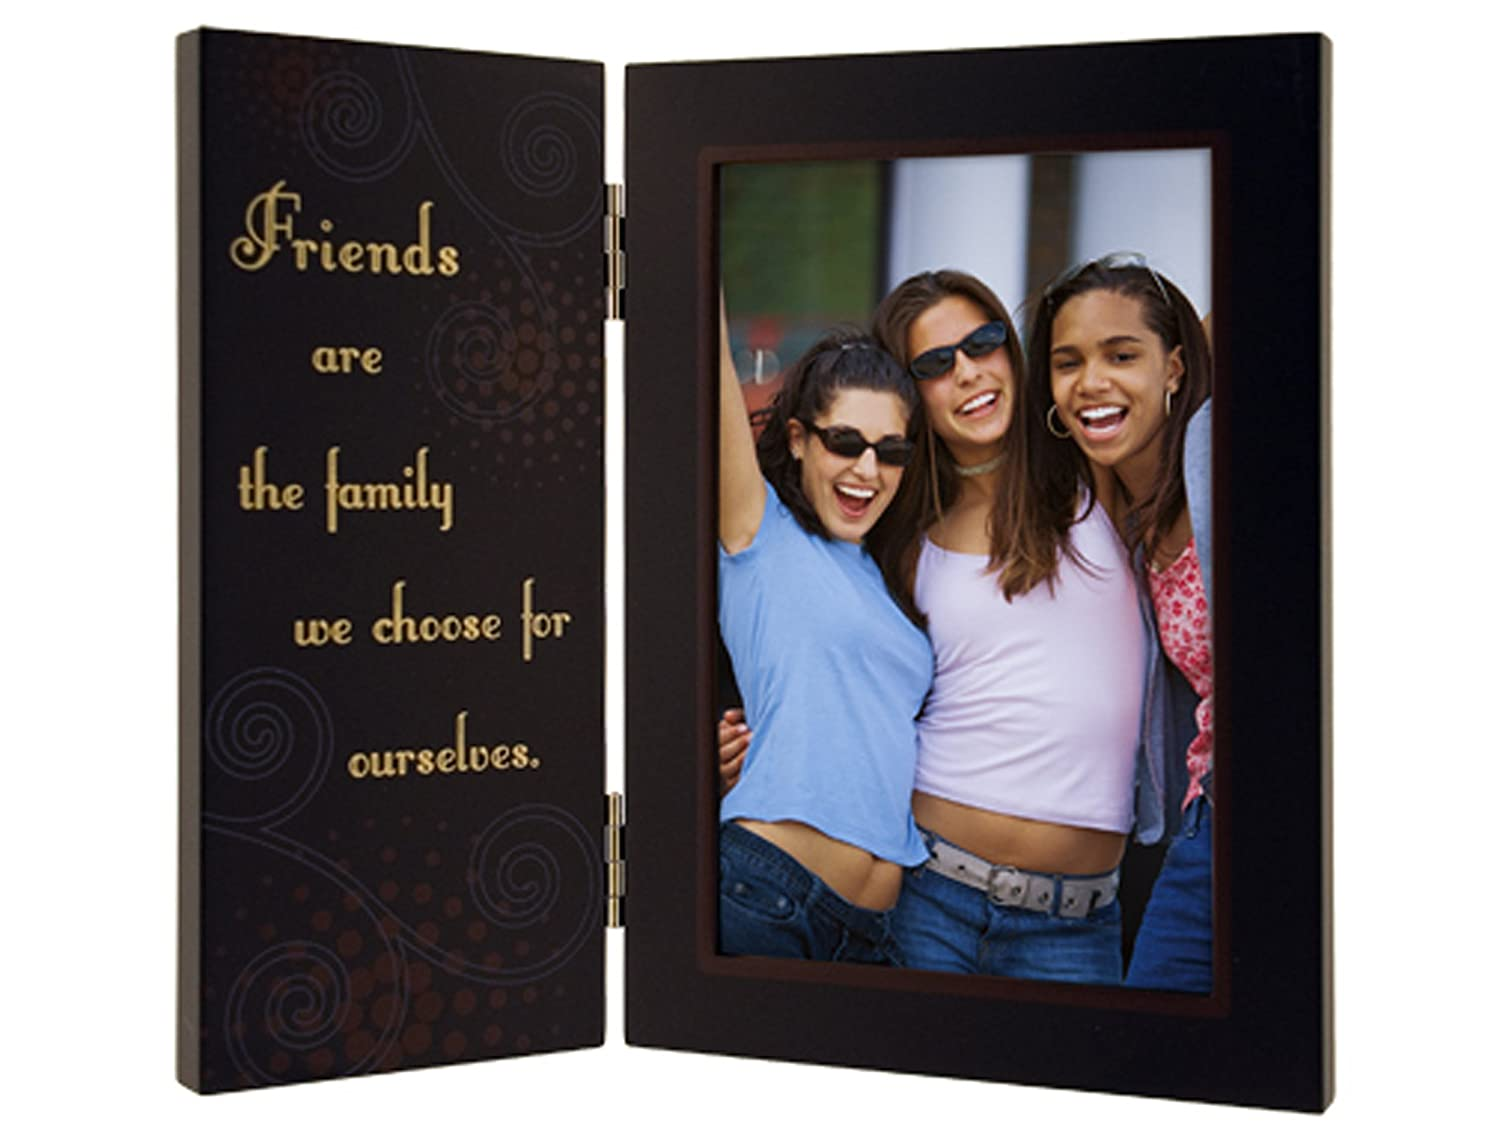 Malden Friends are the Family We Choose for Ourselves Storyboard Frame, 4 by 6-Inch – Single Frames